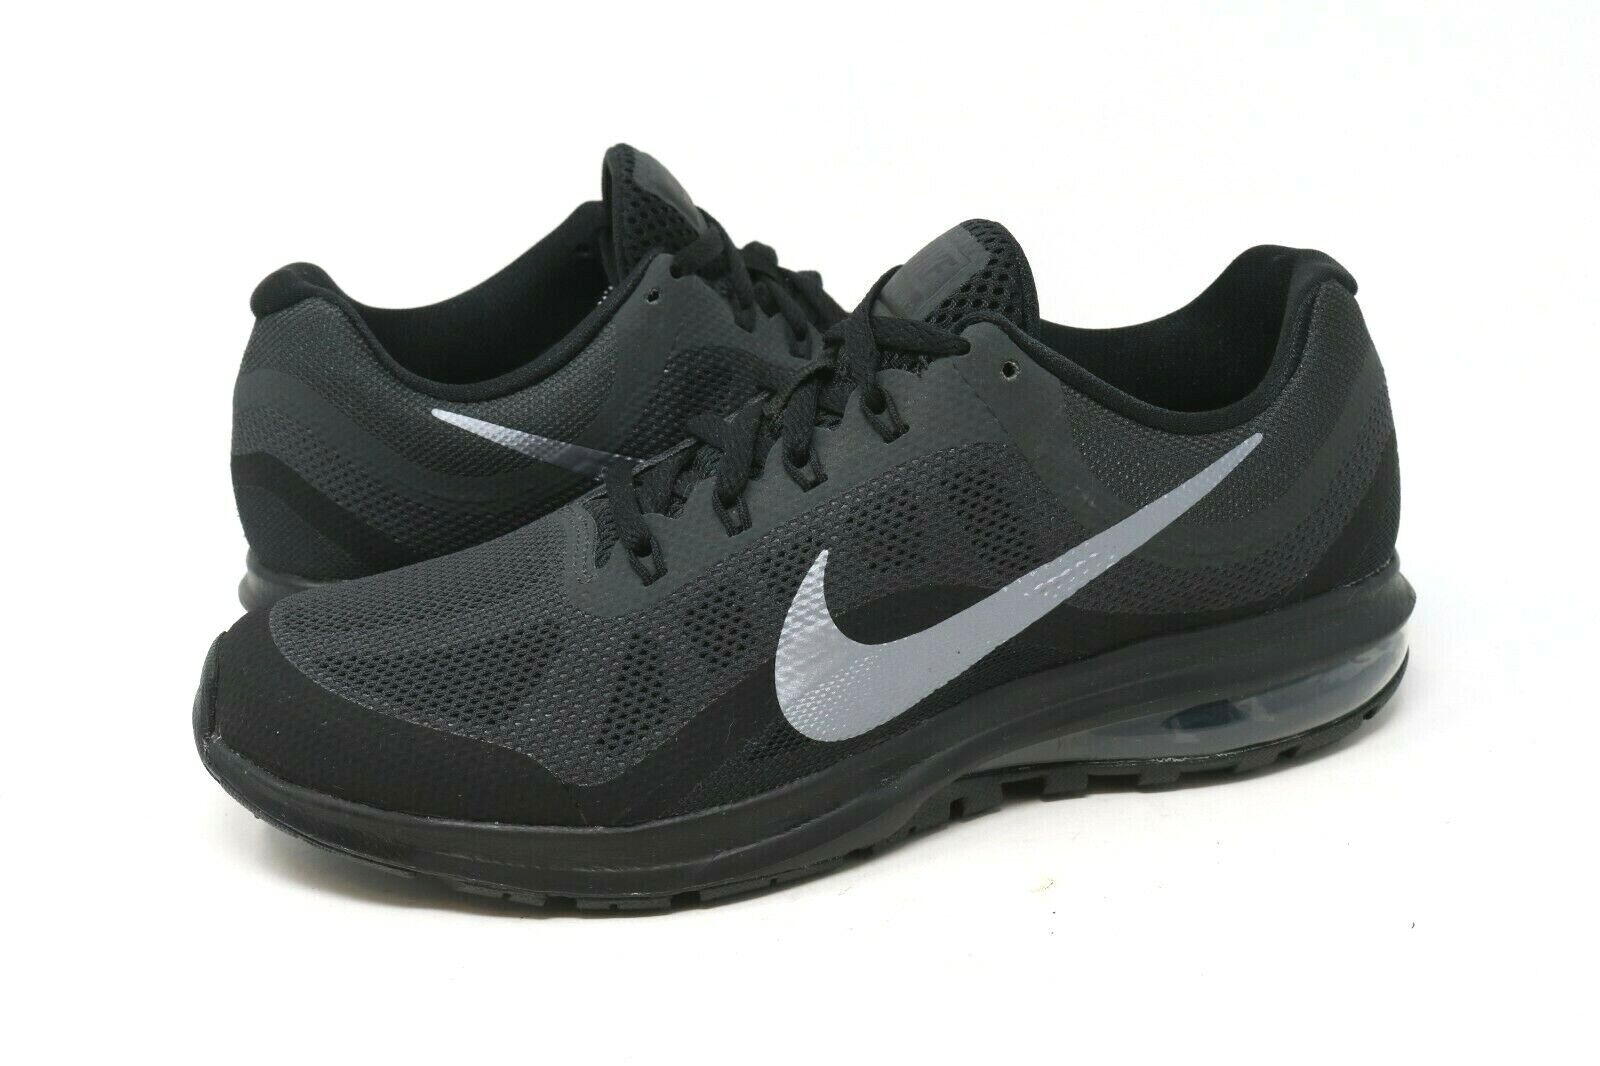 Nike Air Max Dynasty 2 Men's Running Shoes Black Anthracite Grey Size 8.5